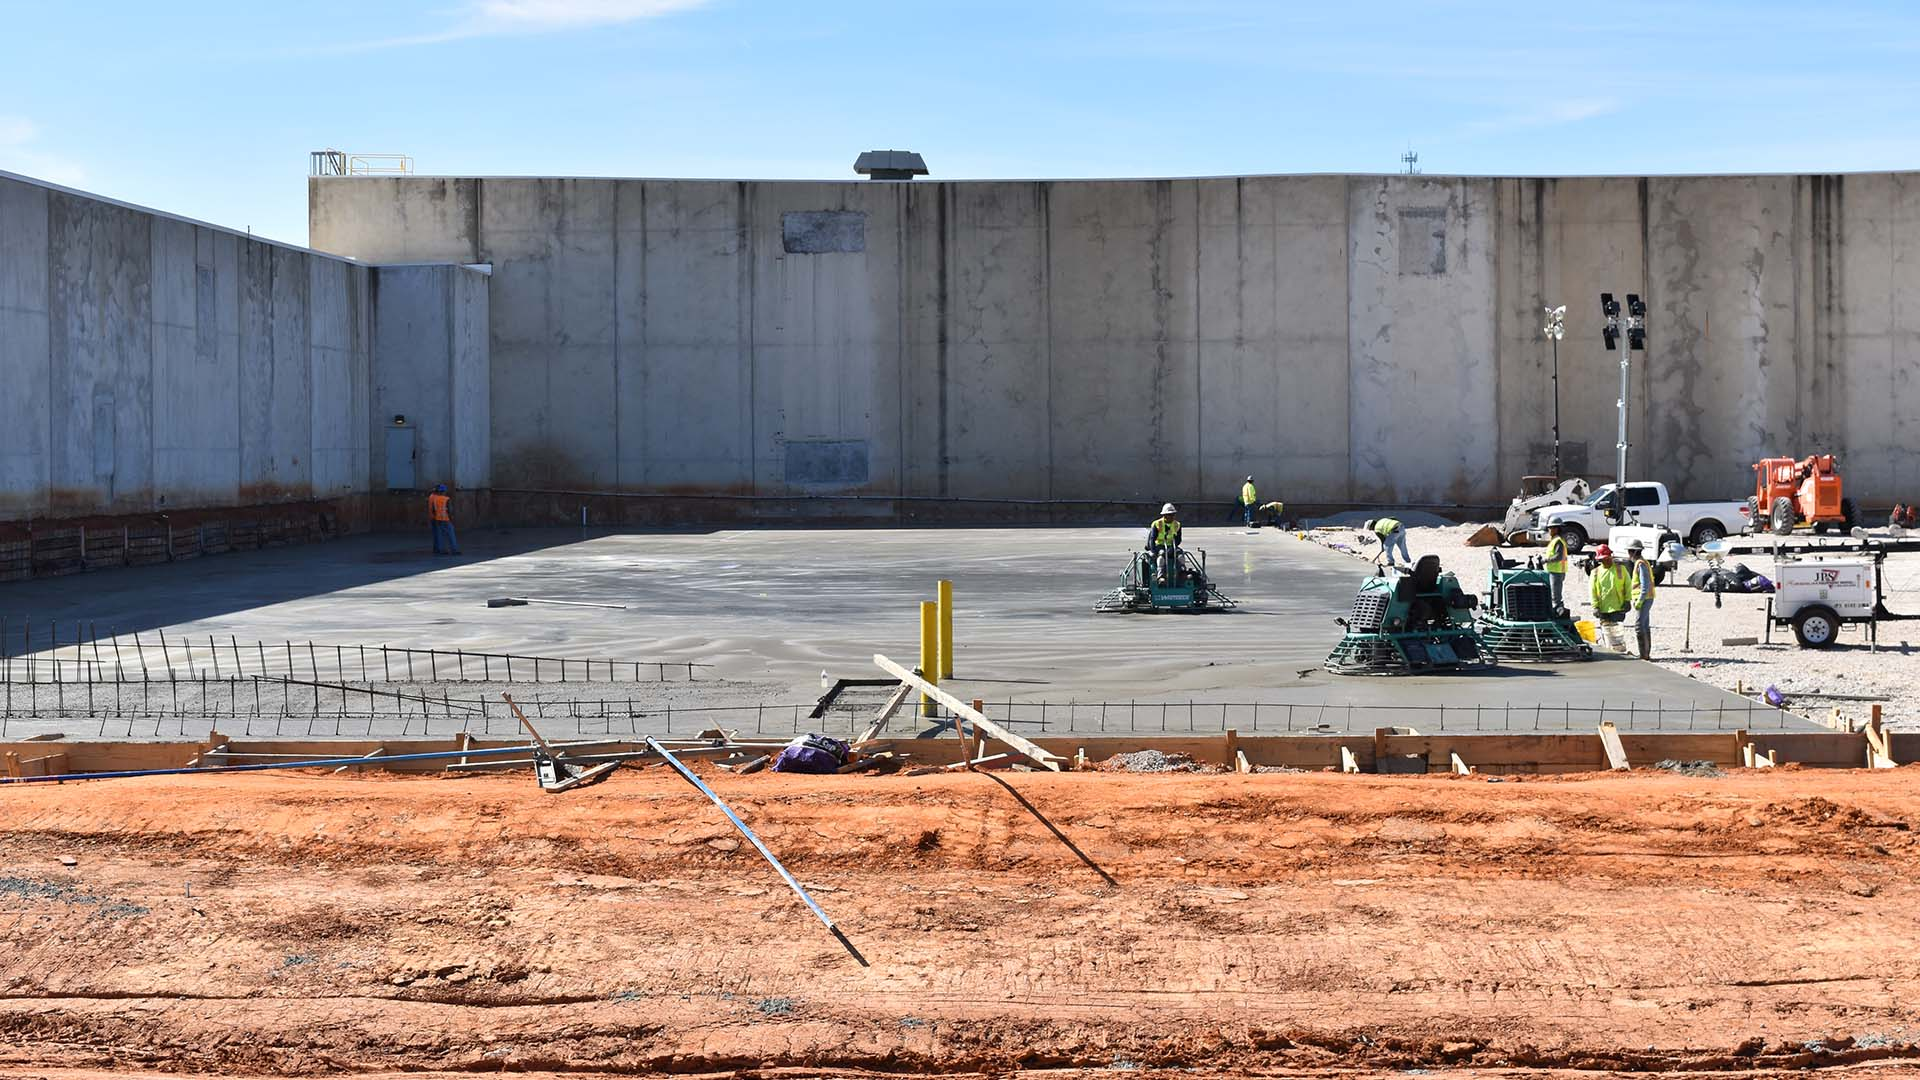 Decker Finishing LLC: Commercial Concrete Services, Industrial Concrete Services and Concrete Flat Work in Baton Rouge, Lake Charles and New Orleans